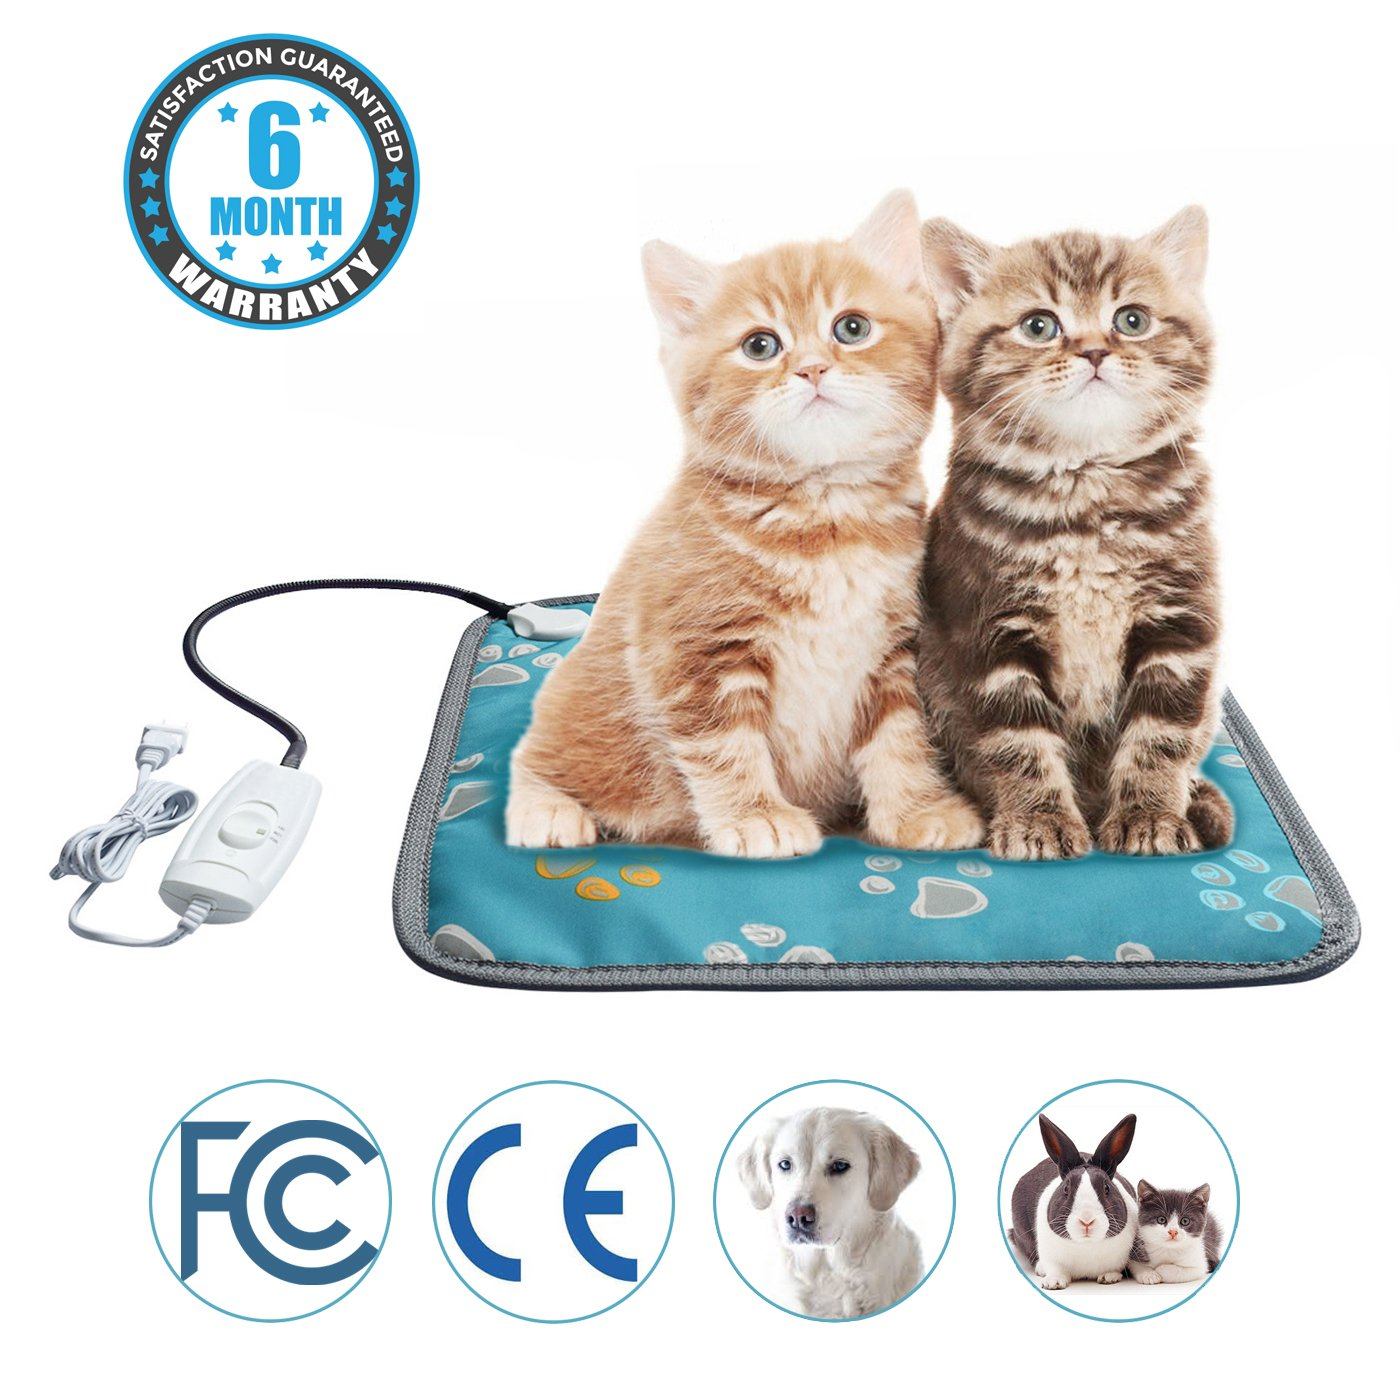 Mazort Pet Heating Pad Cats and Dogs Safety Electric Heated Pet Bed Warming Mat with 2 Adjustable Temperature Chew Resistant Cord 17.7'' x 17.7''